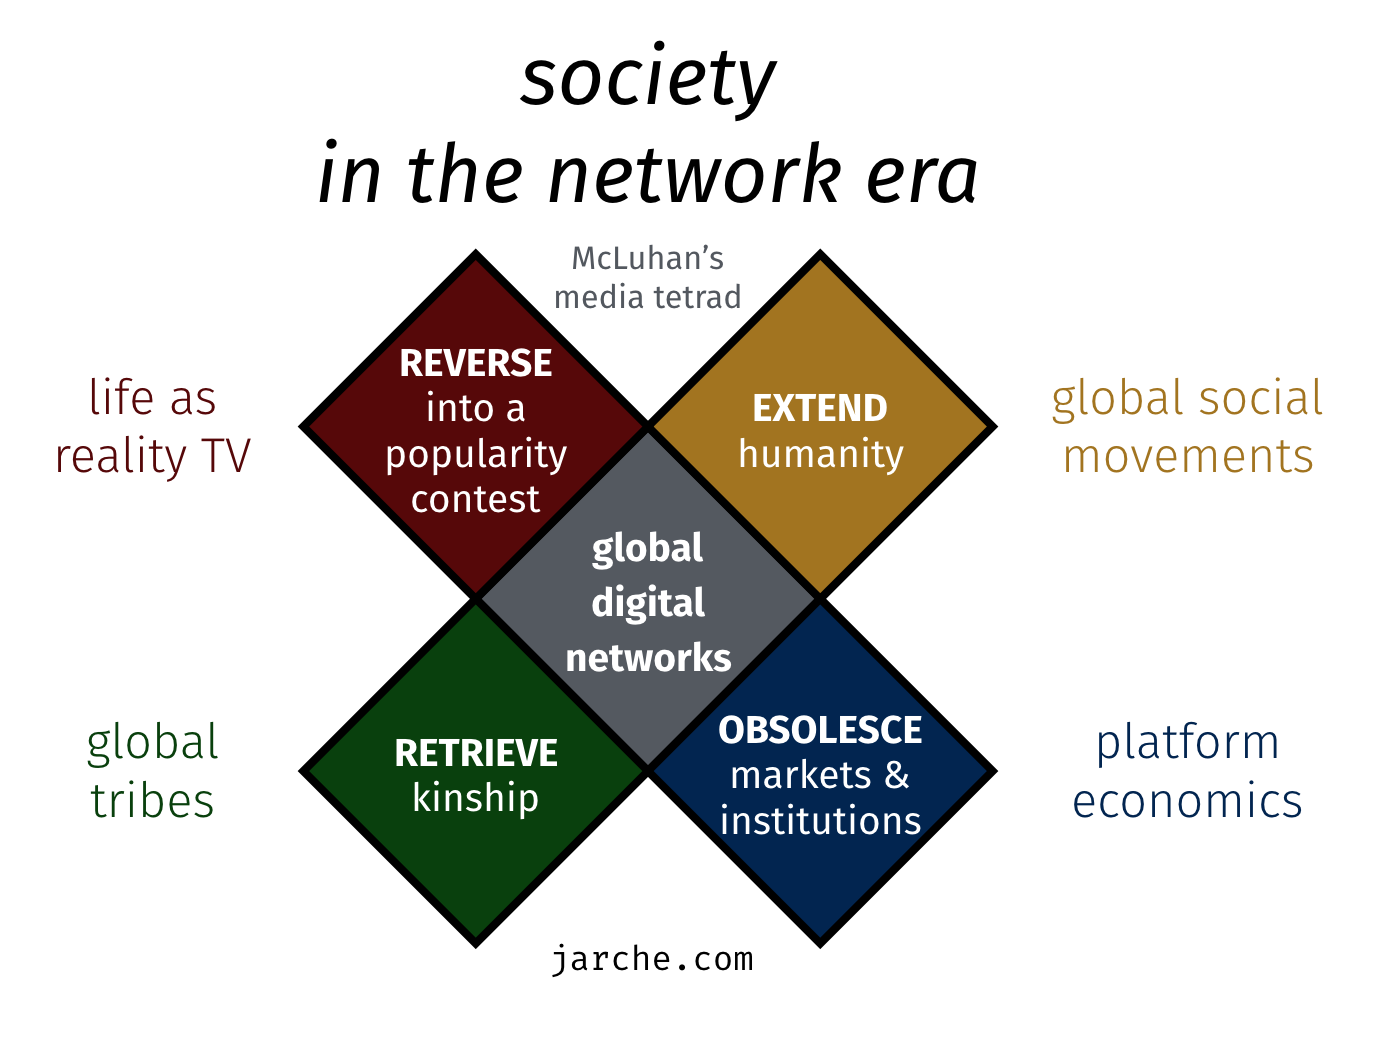 society-network-era